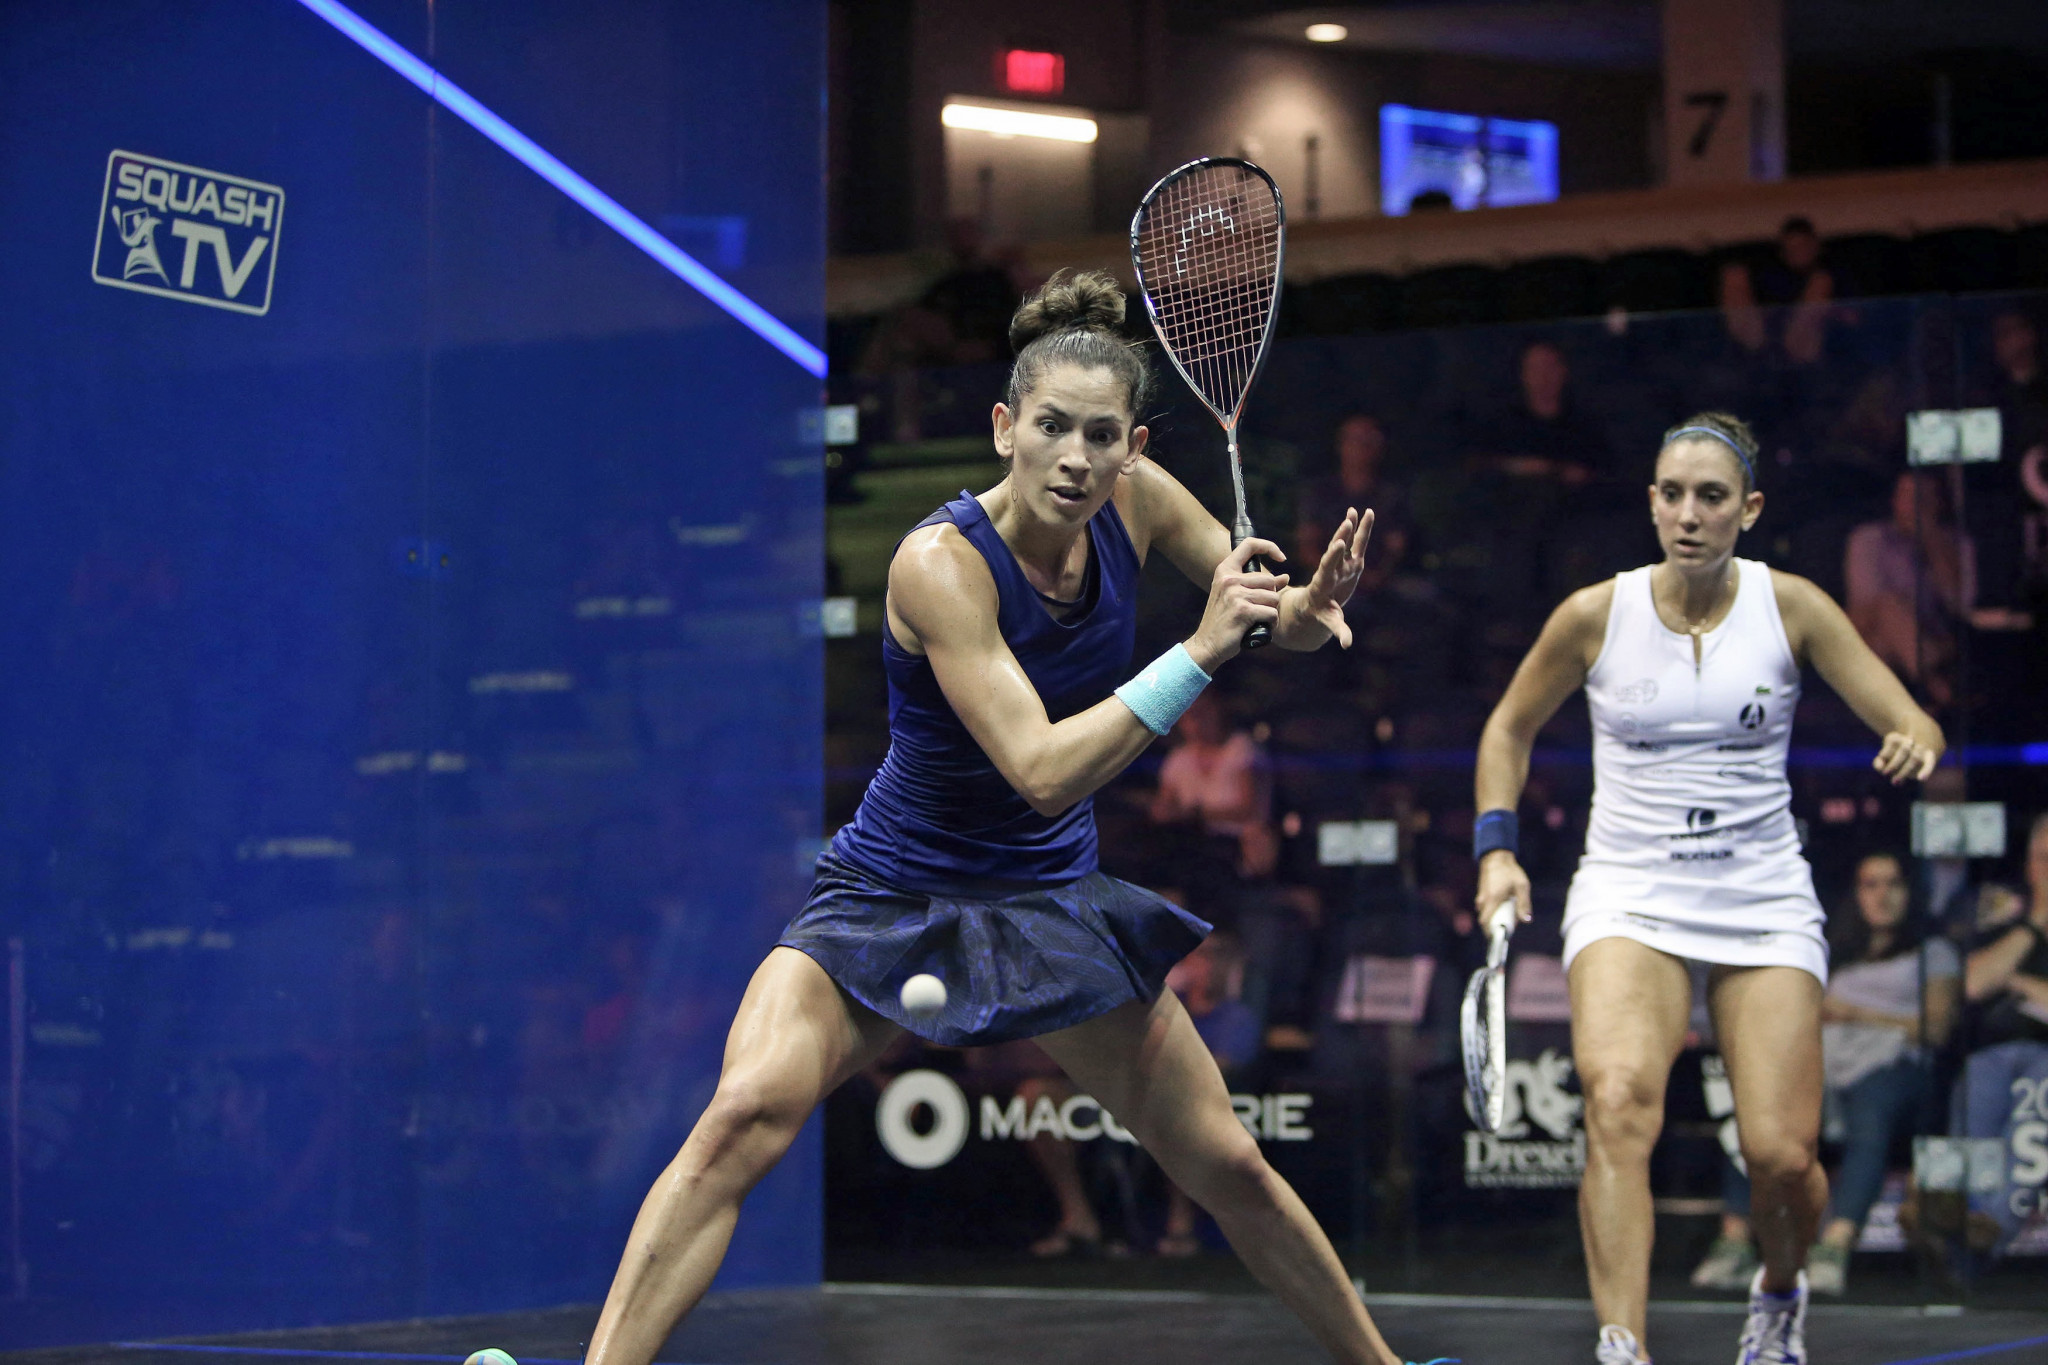 King ends Serme title defence at PSA US Open to reach last eight